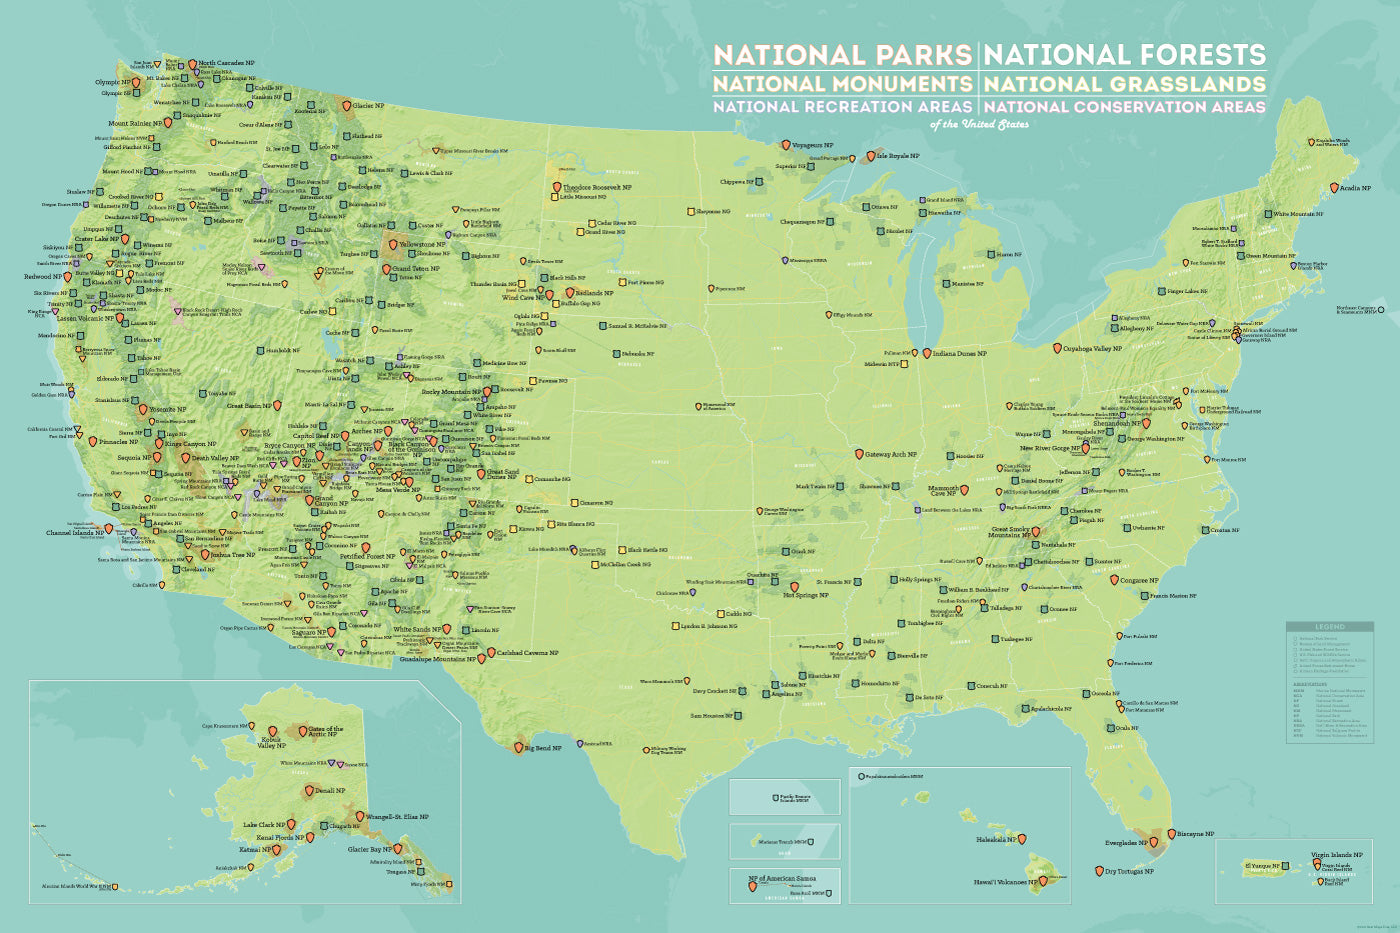 Us National Parks Monuments Forests Map 24x36 Poster Best: National Parks And Monuments Map At Slyspyder.com